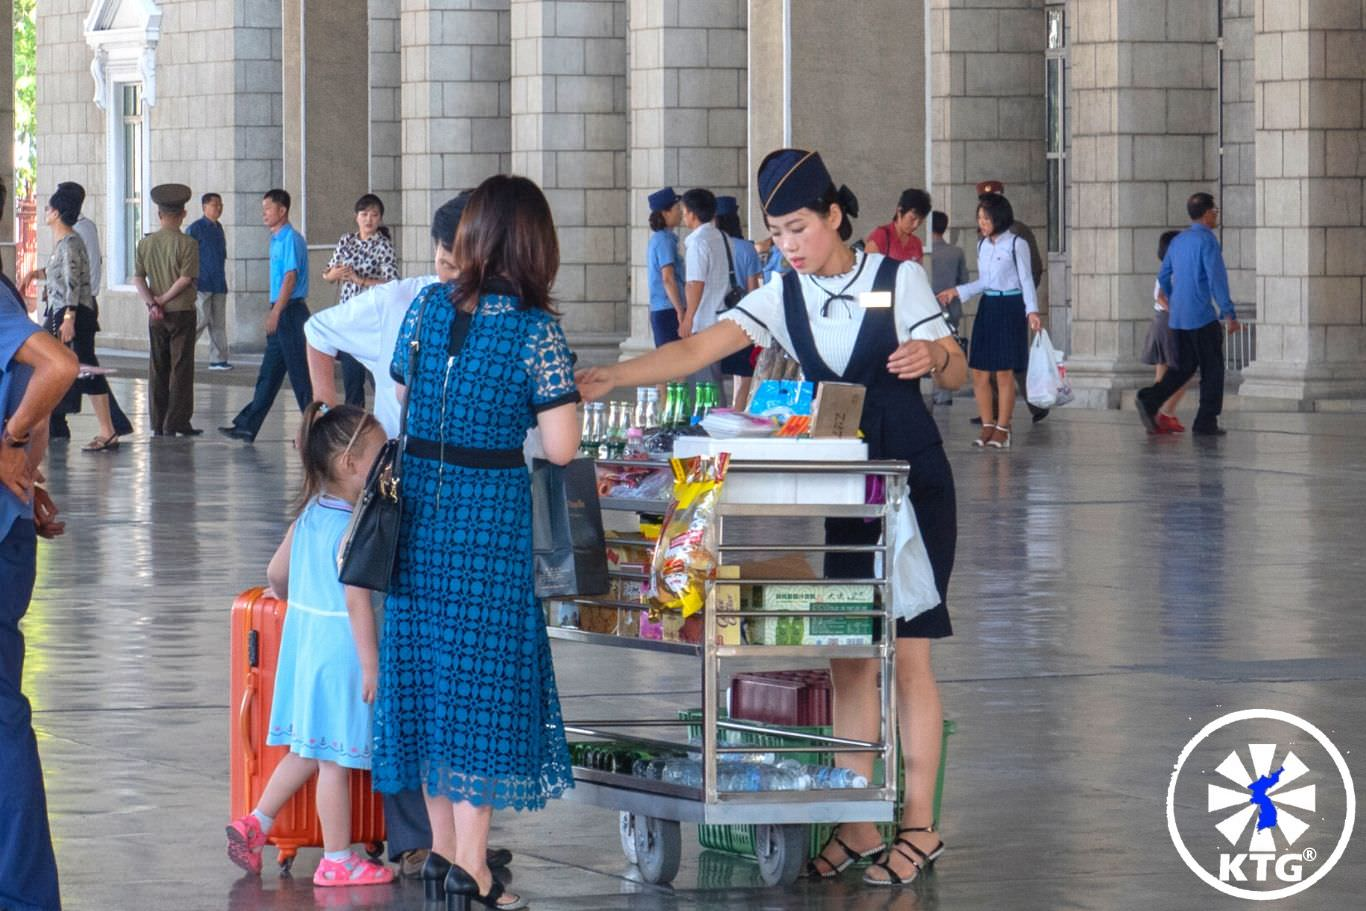 Lady selling snacks at the Pyongyang train station, North Korea (DPRK) before we take the train to China. Picture taken by KTG®